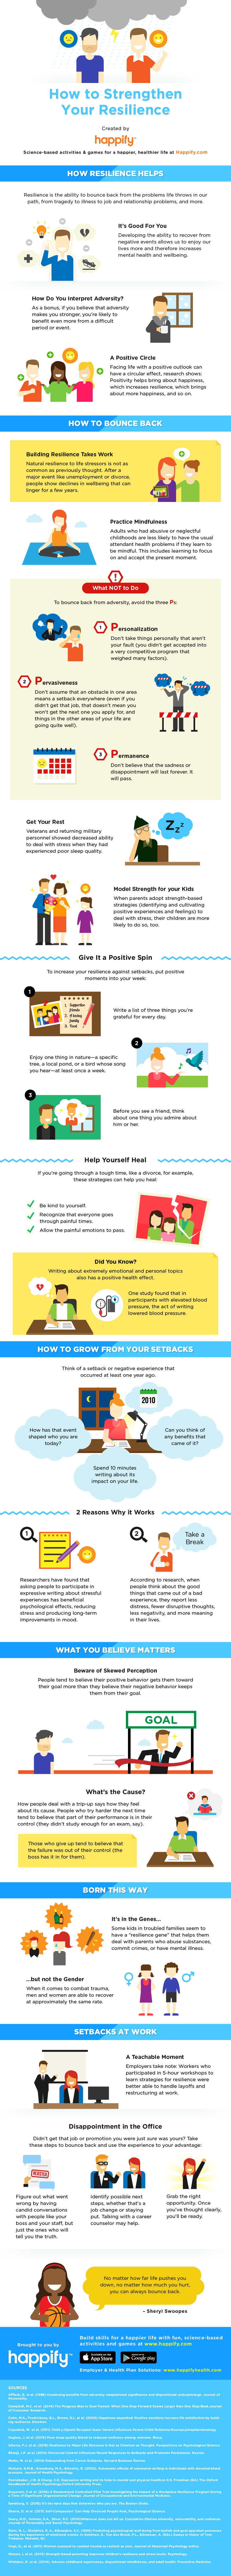 strengthen-resilience-infographic.png